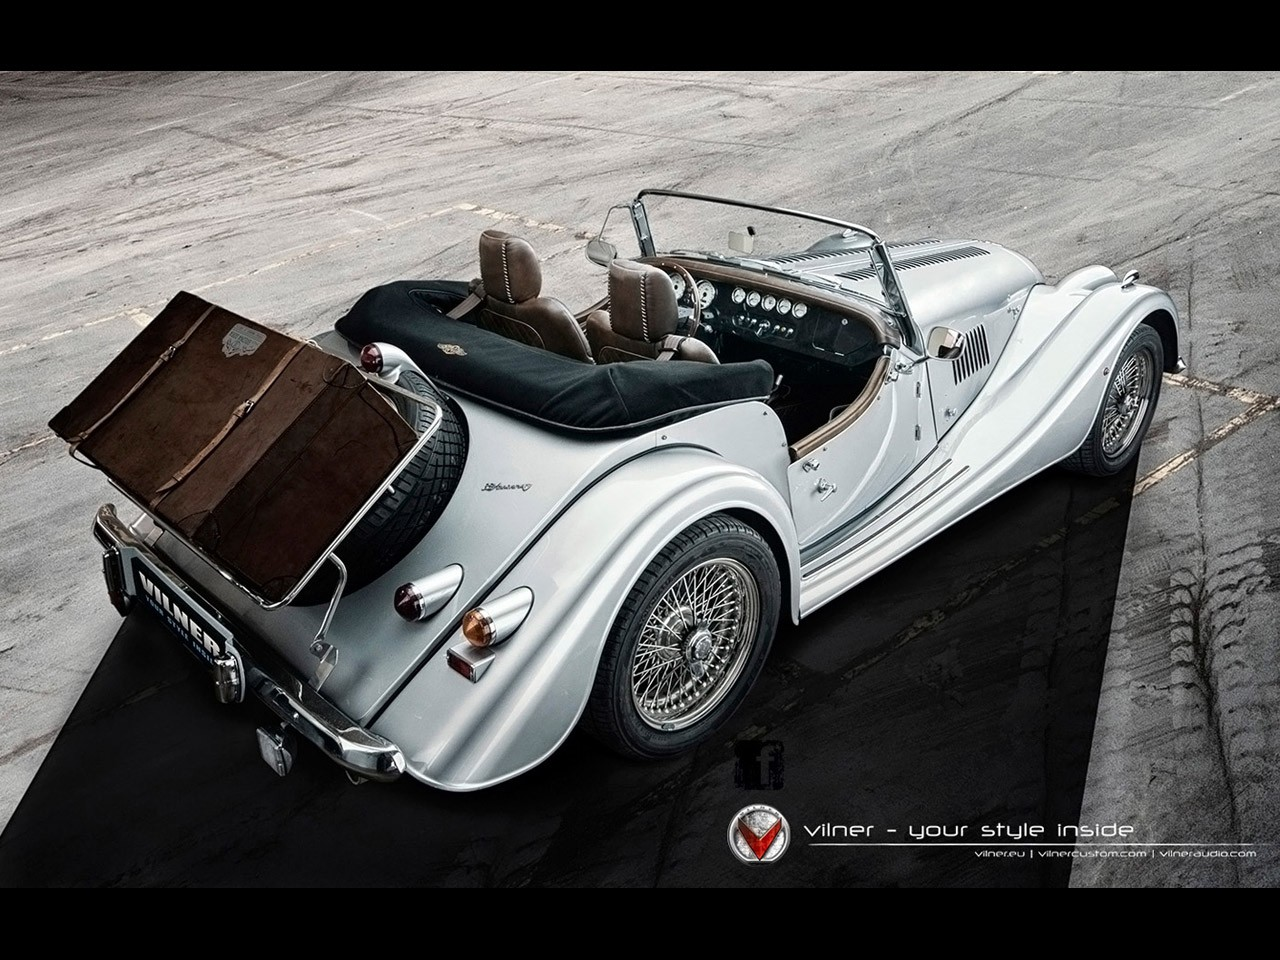 Morgan Plus 8 (2015) - Vilner